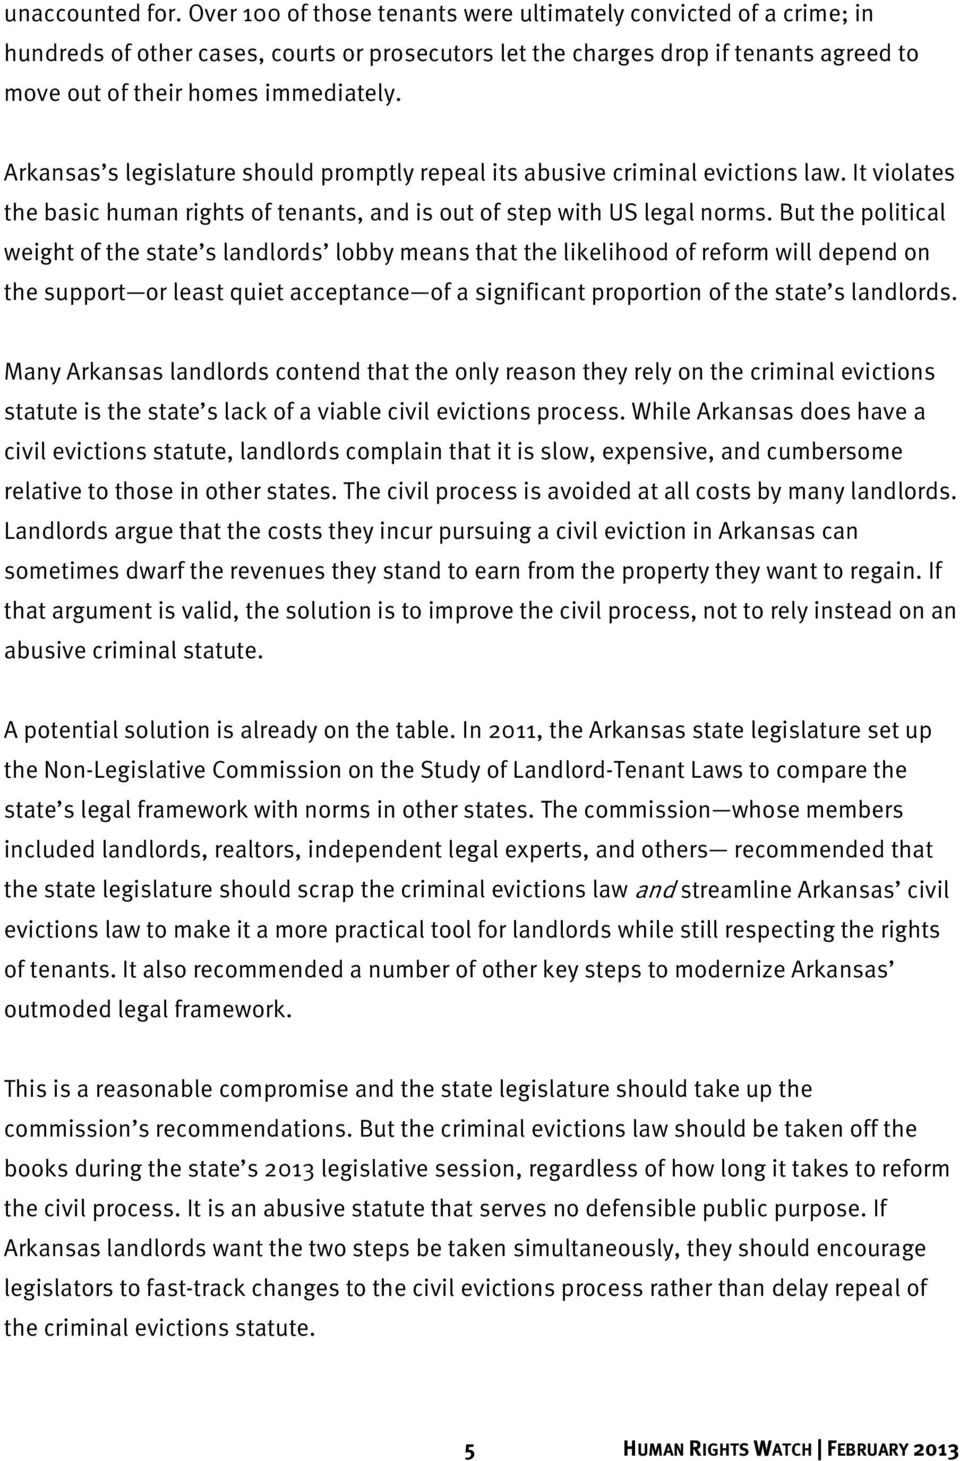 Arkansas s legislature should promptly repeal its abusive criminal evictions law. It violates the basic human rights of tenants, and is out of step with US legal norms.